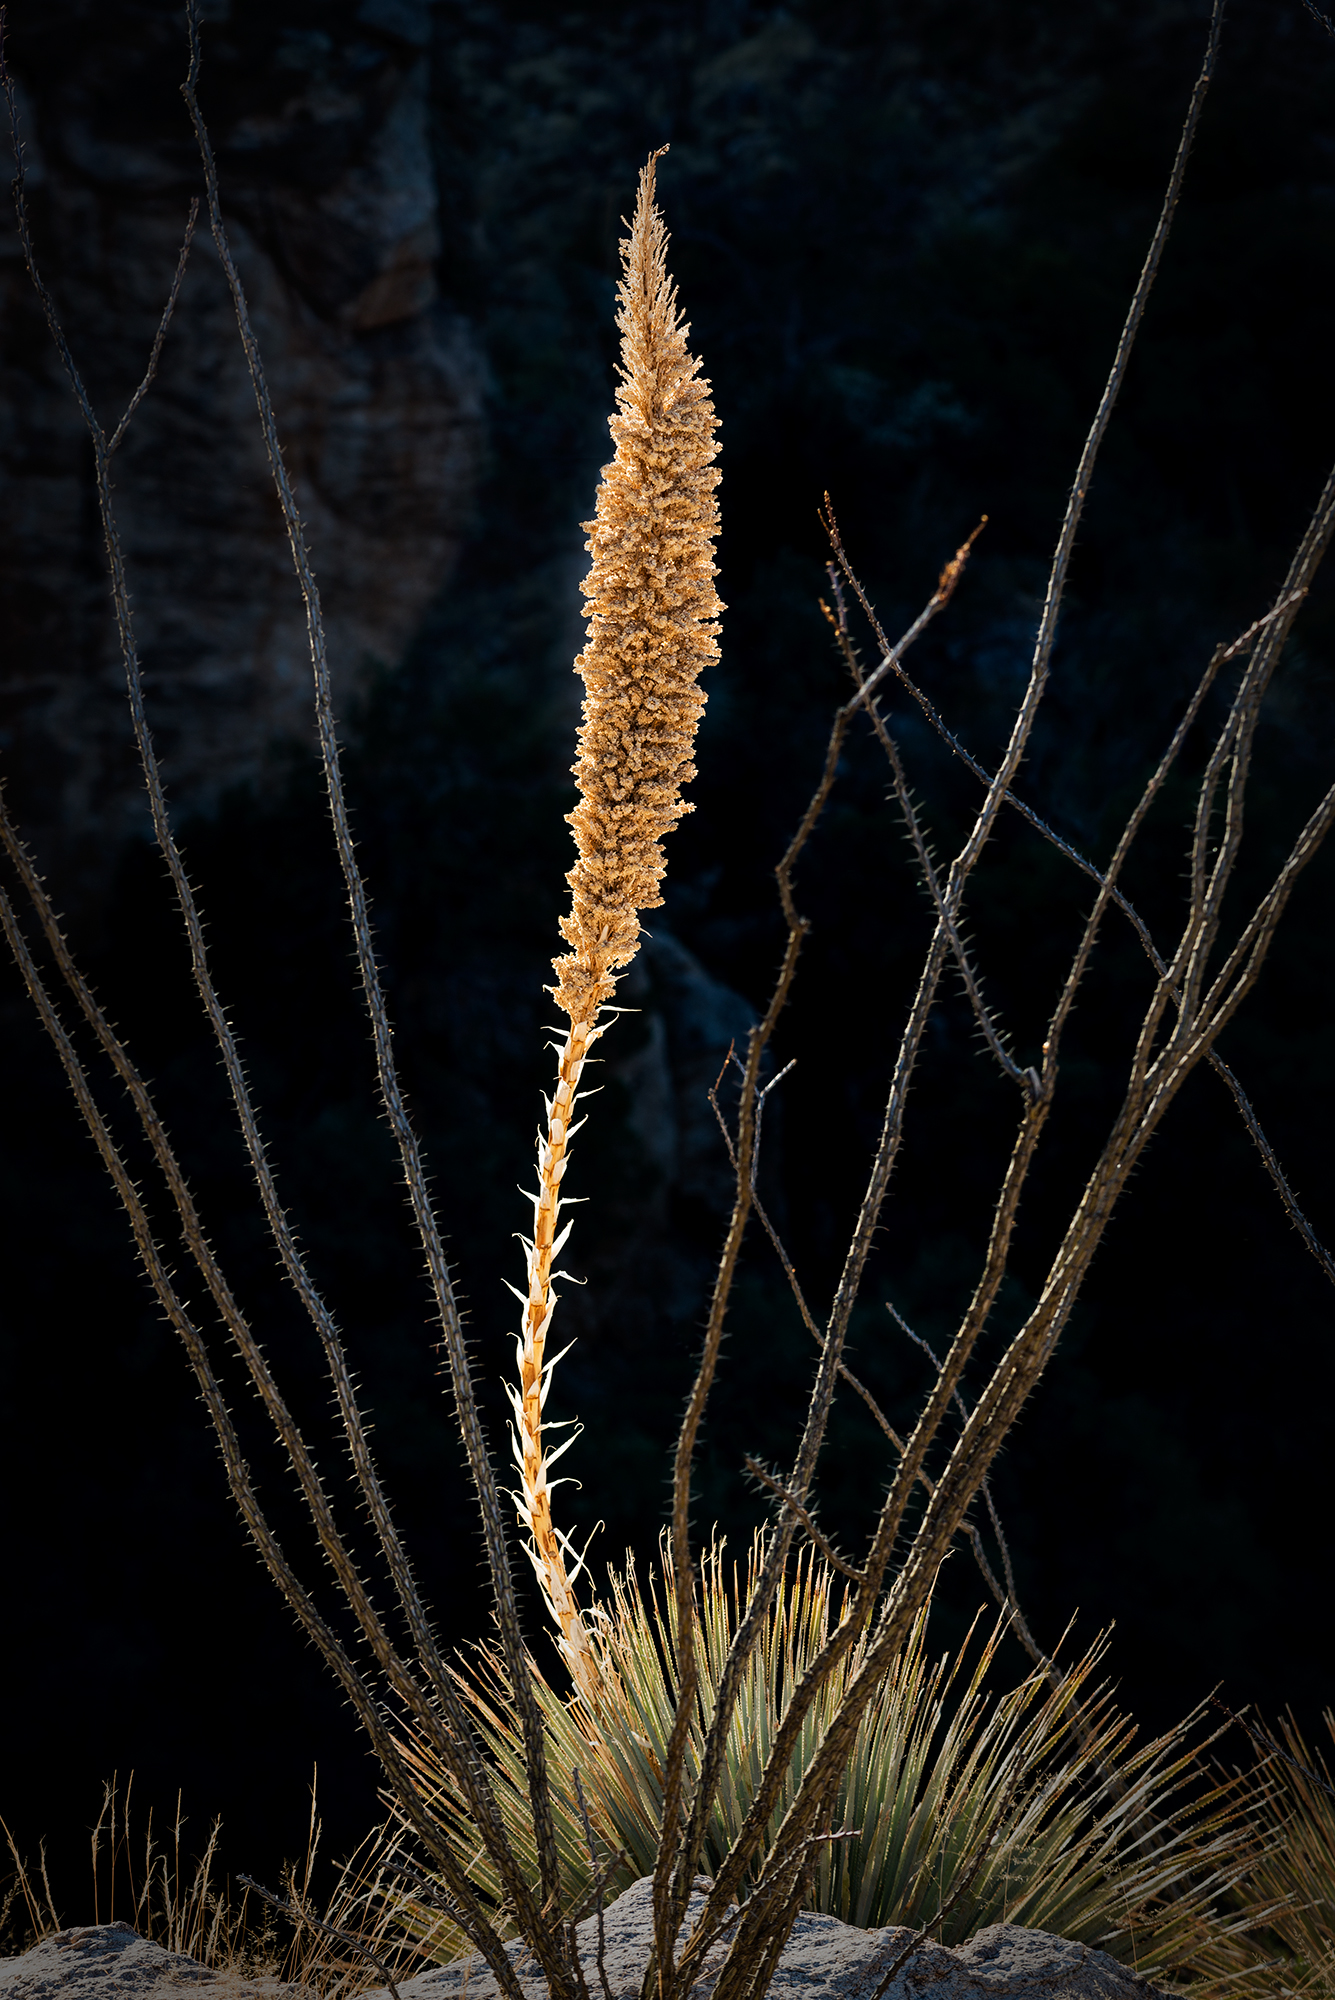 Agave and Ocotillo. Mount Lemmon, Arizona, 2016